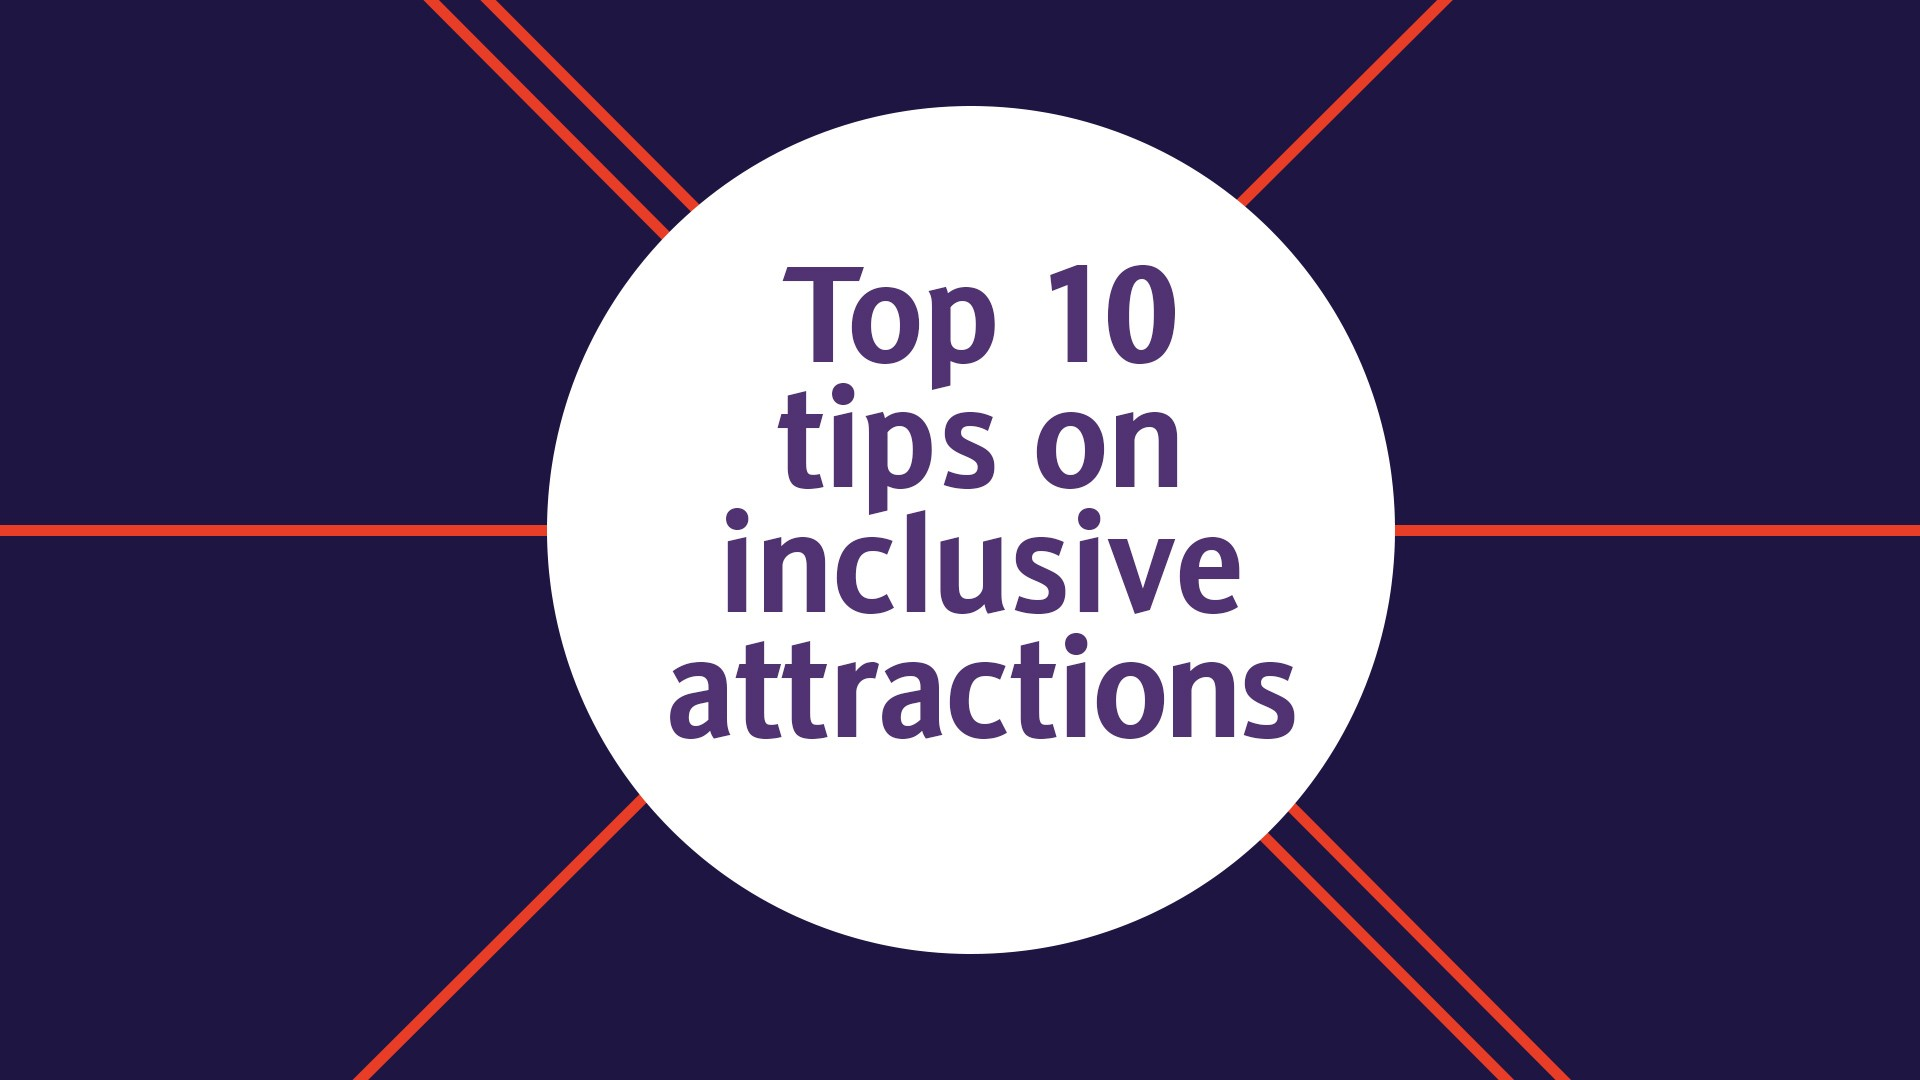 Top 10 tips on inclusive attractions